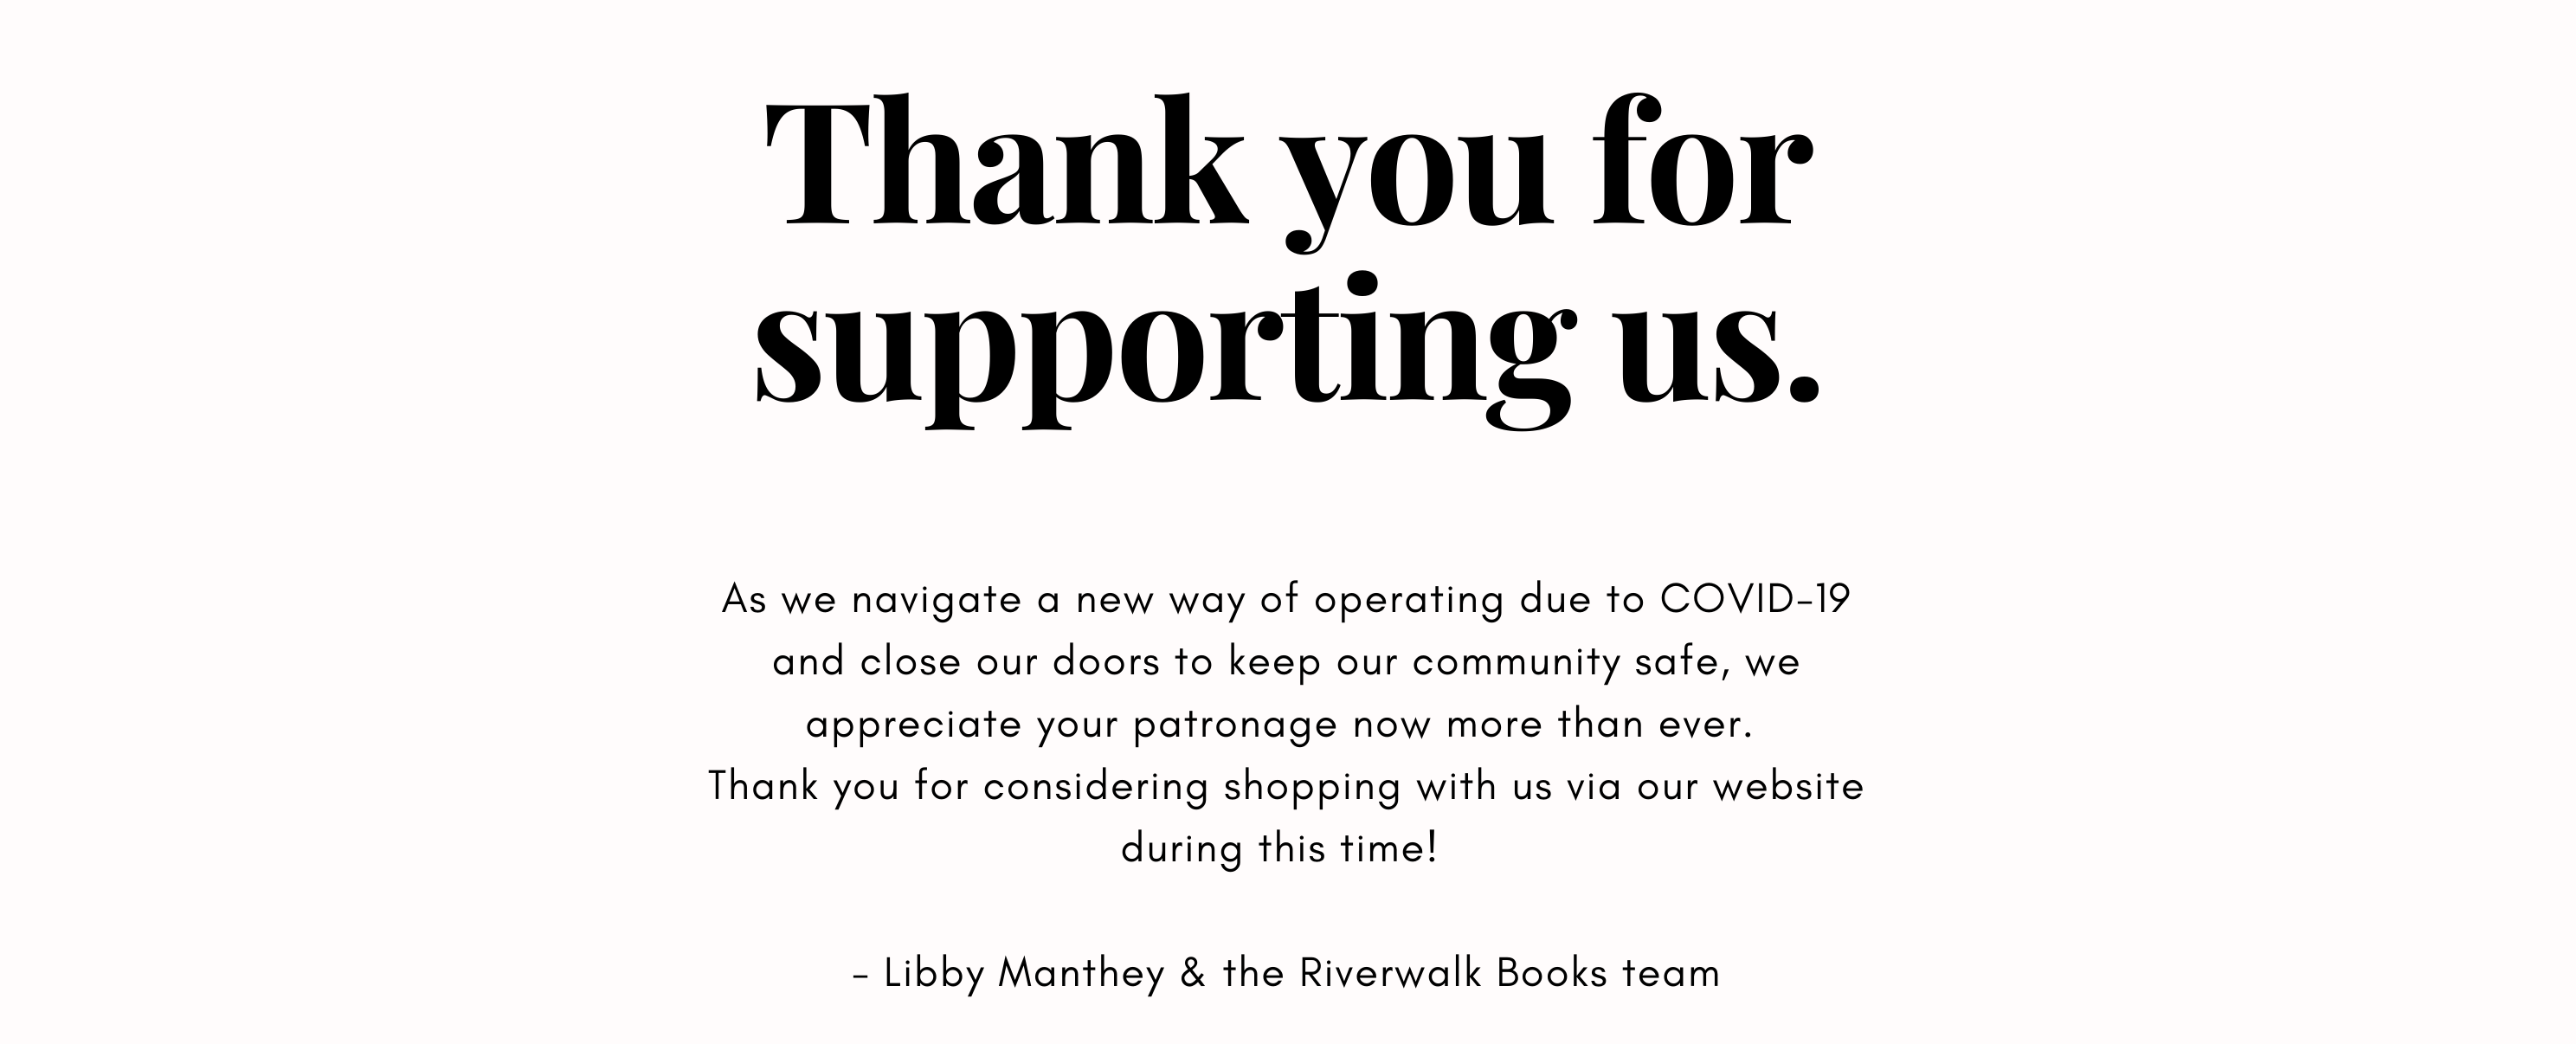 As we navigate a new way of operating due to COVID-19 and close our doors to keep our community safe, we appreciate your patronage now more than ever. Thank you for considering shopping with us via our website during this time!   - Libby Manthey & the Riverwalk Books team